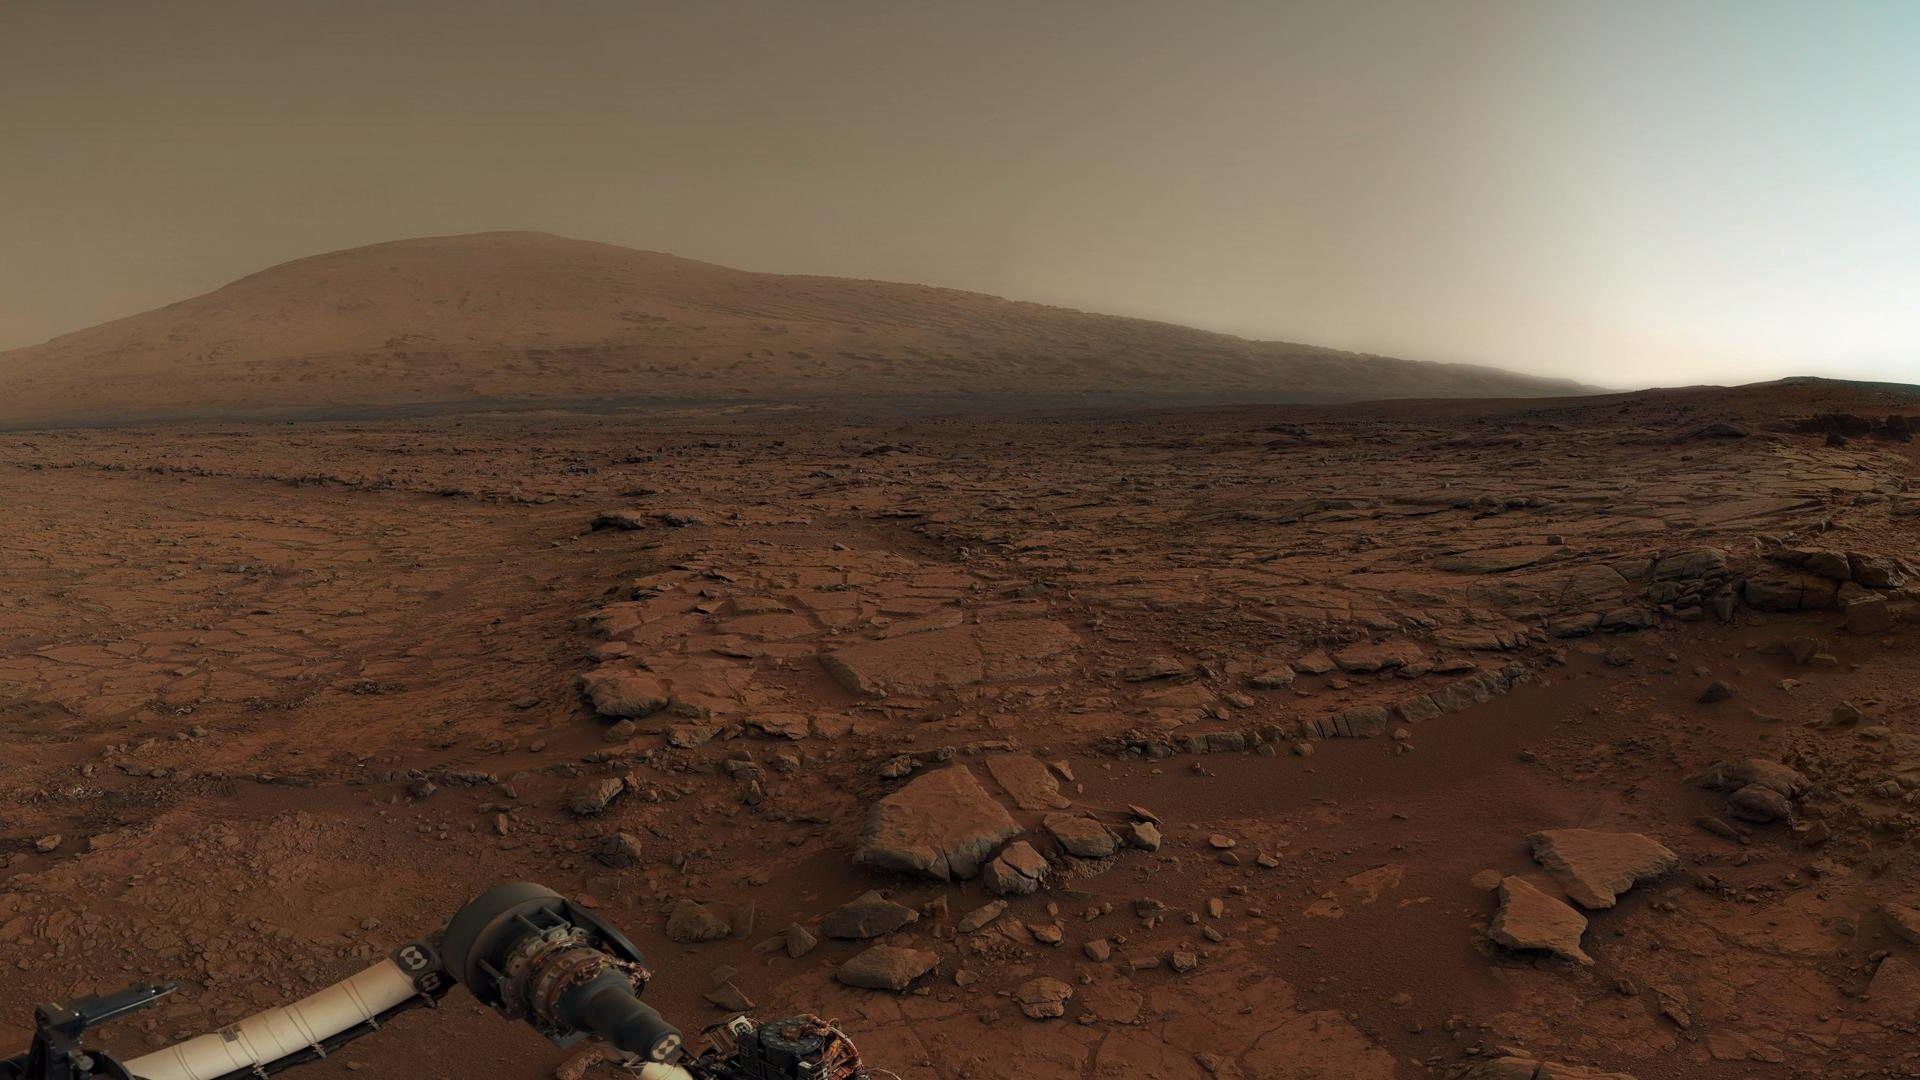 Actual photos of mars 2,000 Days on Mars With the Curiosity Rover - The Atlantic